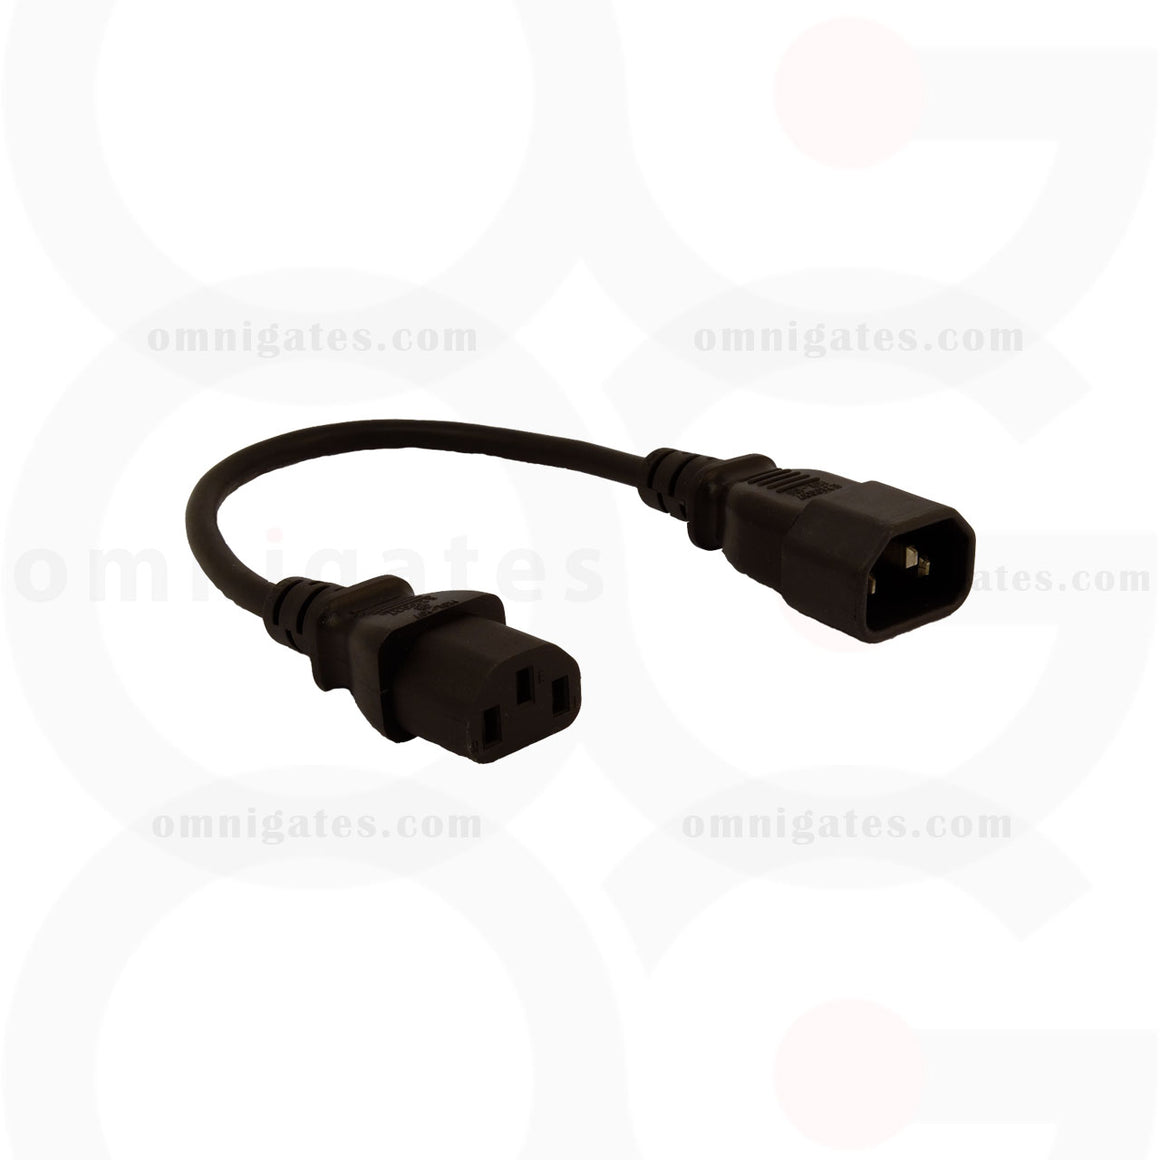 black 1 foot Power Cord Extension, PC/Monitor, 18AWG, 10A 125V, C13/C14 Connector Cable